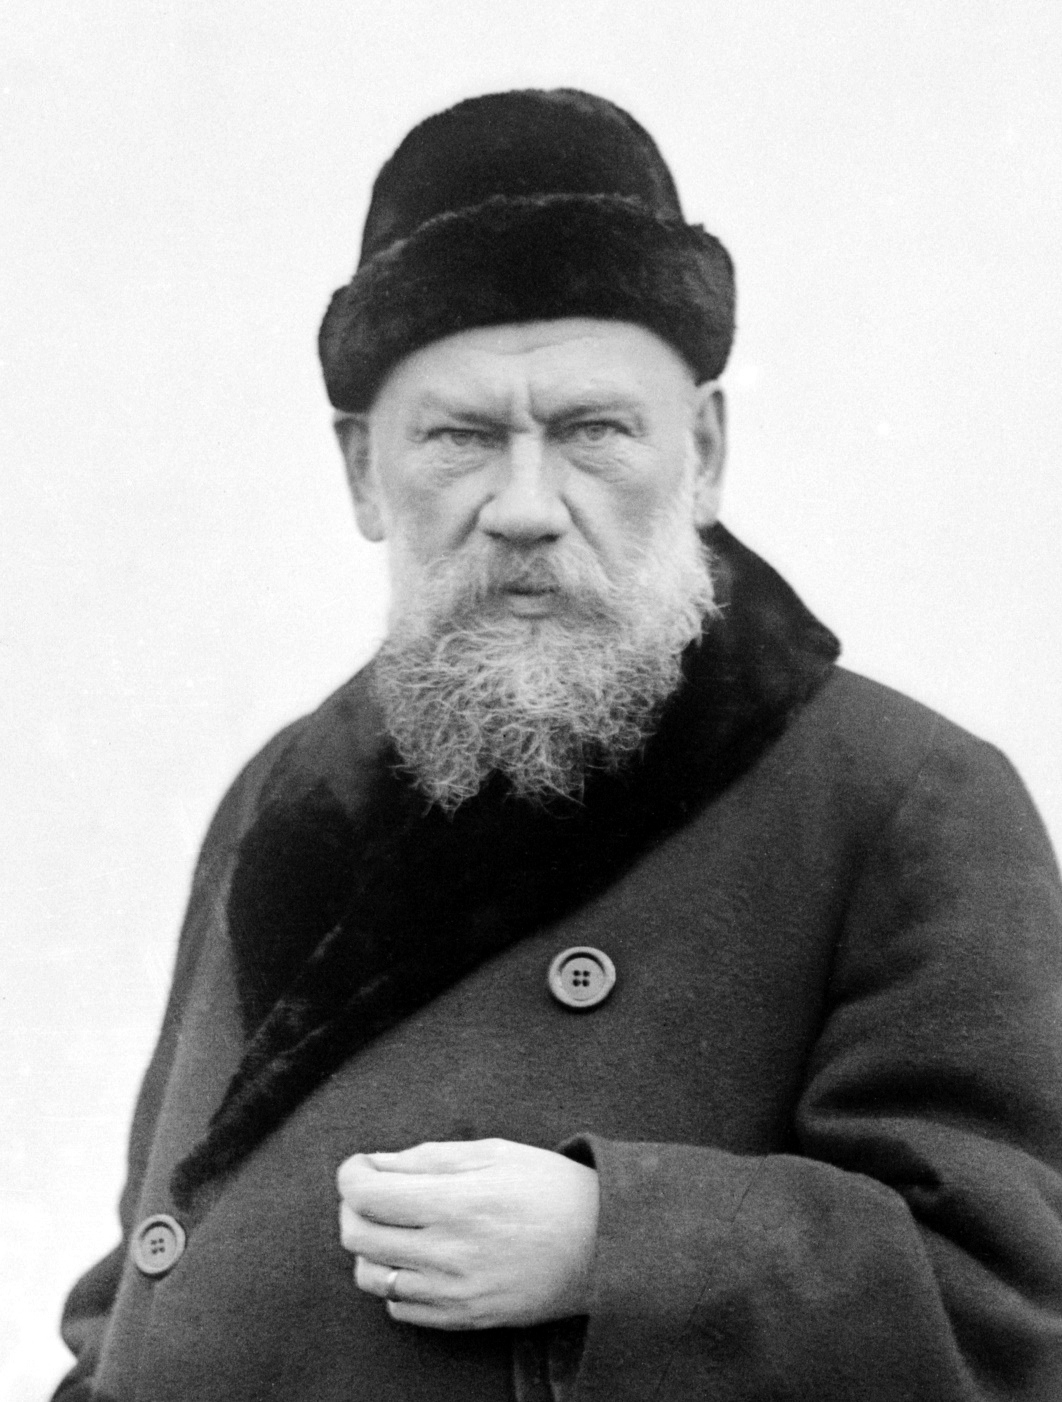 tolstoy dating Tolstoy marriage doc,  on dating marriage and rekindling your relationship through sex a tender road home the story of how god healed a.